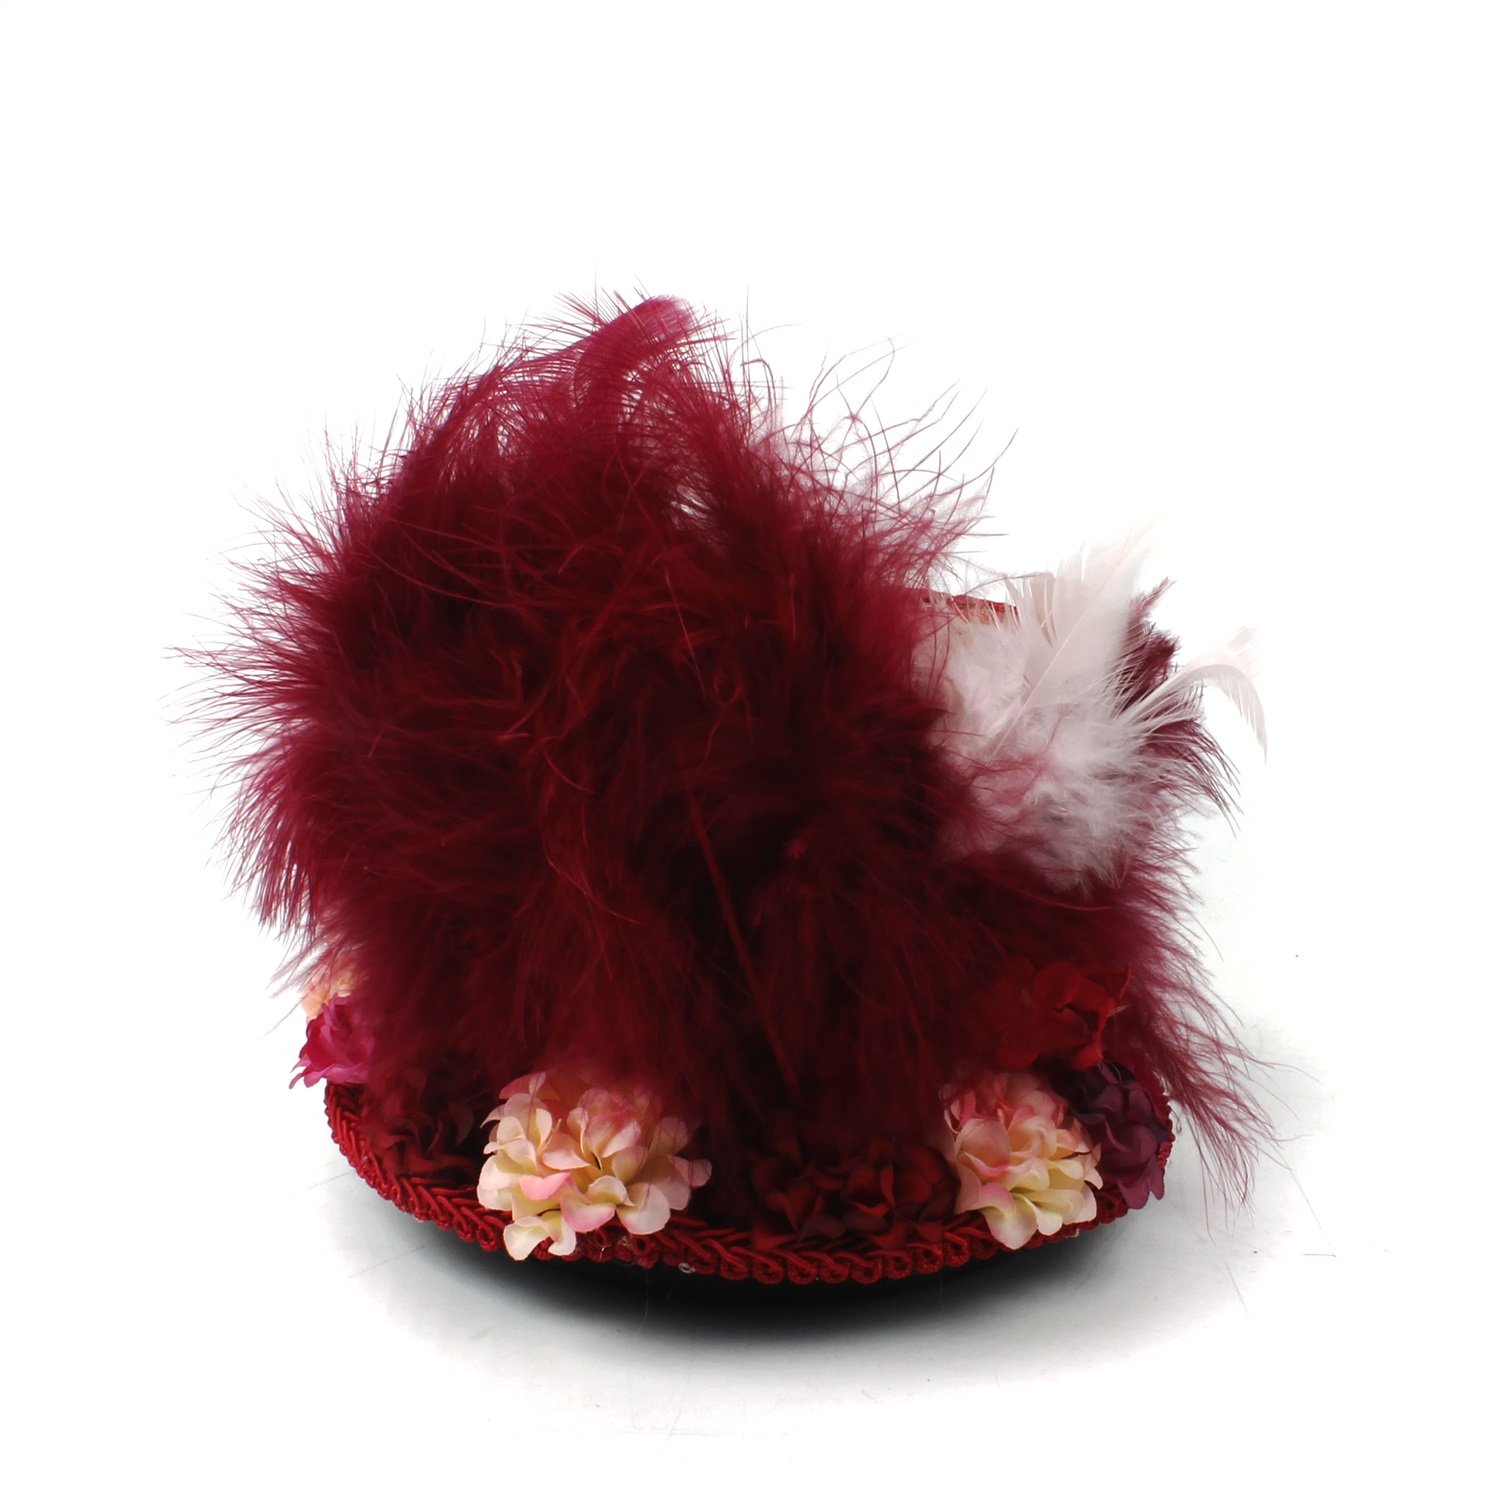 LL Women;s Red Mini Top Hat, Antique Red and Ivory Tea Cup Hat Mad Hatter Hat, Tea Hat,Mad Hatter Tea Party (Color : Red, Size : 25-30cm) by LL (Image #3)